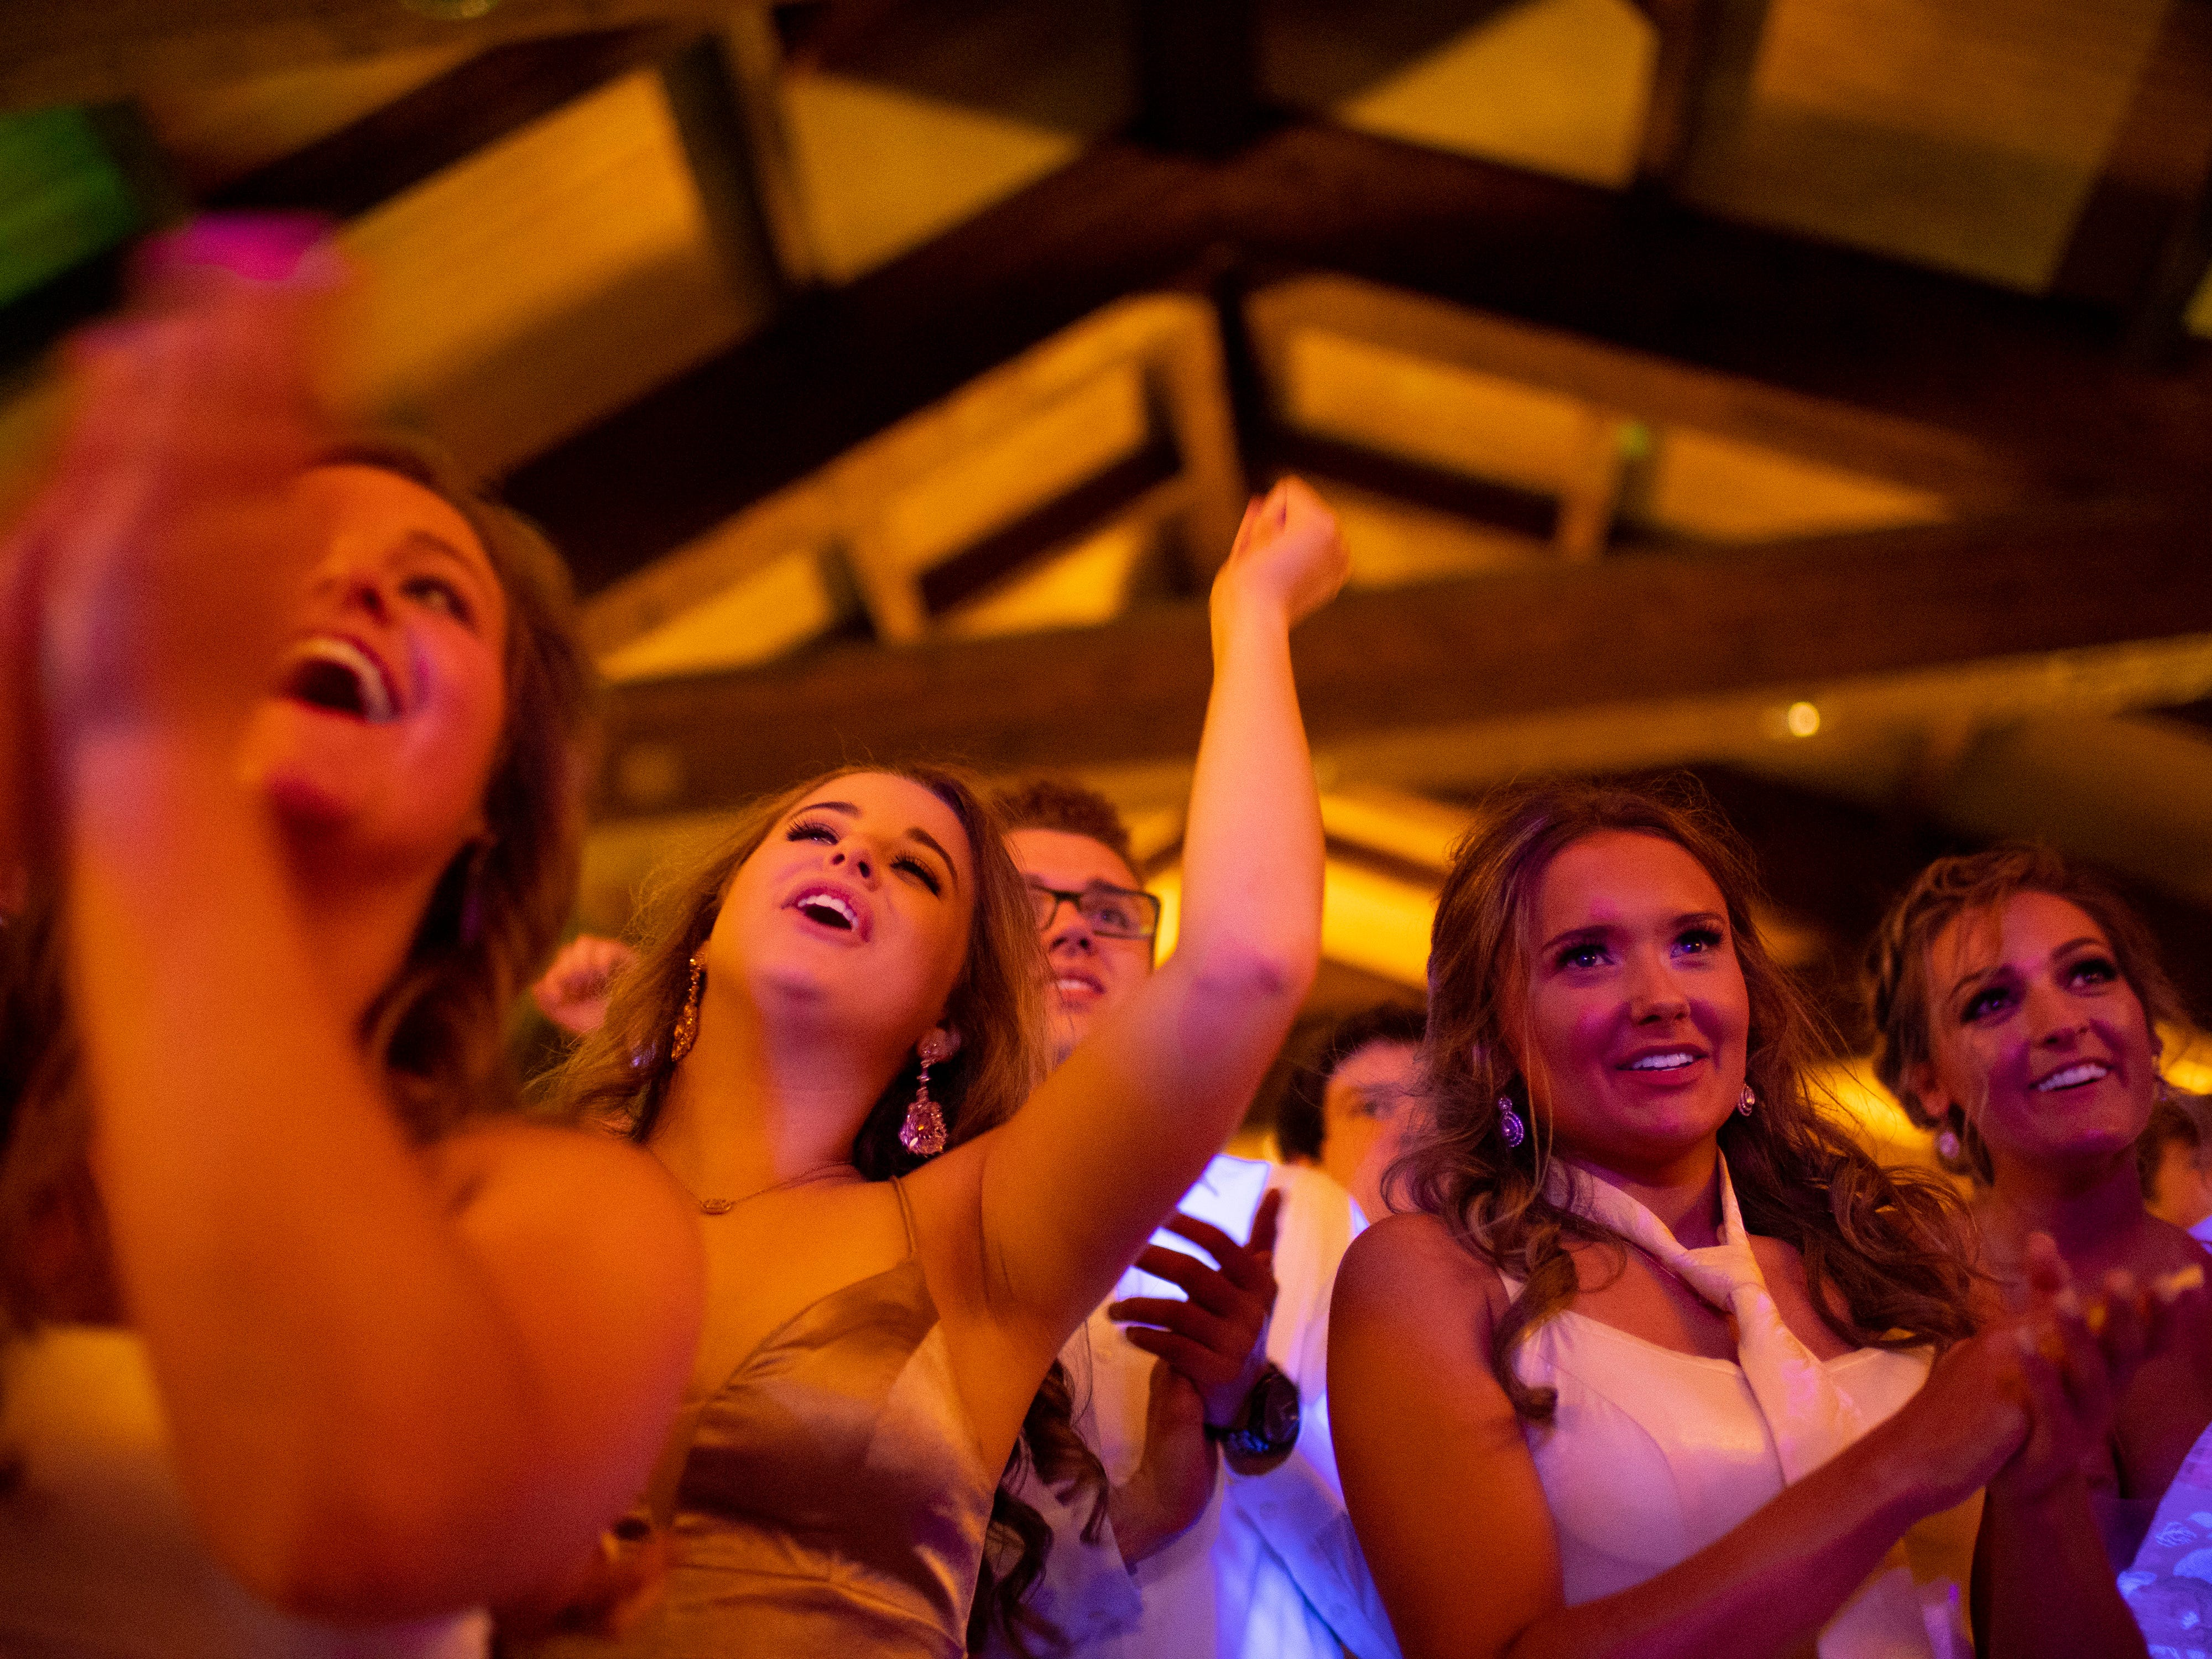 Students cheer the crowning of the prom king and queen at Mater Dei's prom at Burdette Park's Discovery Lodge Saturday night.